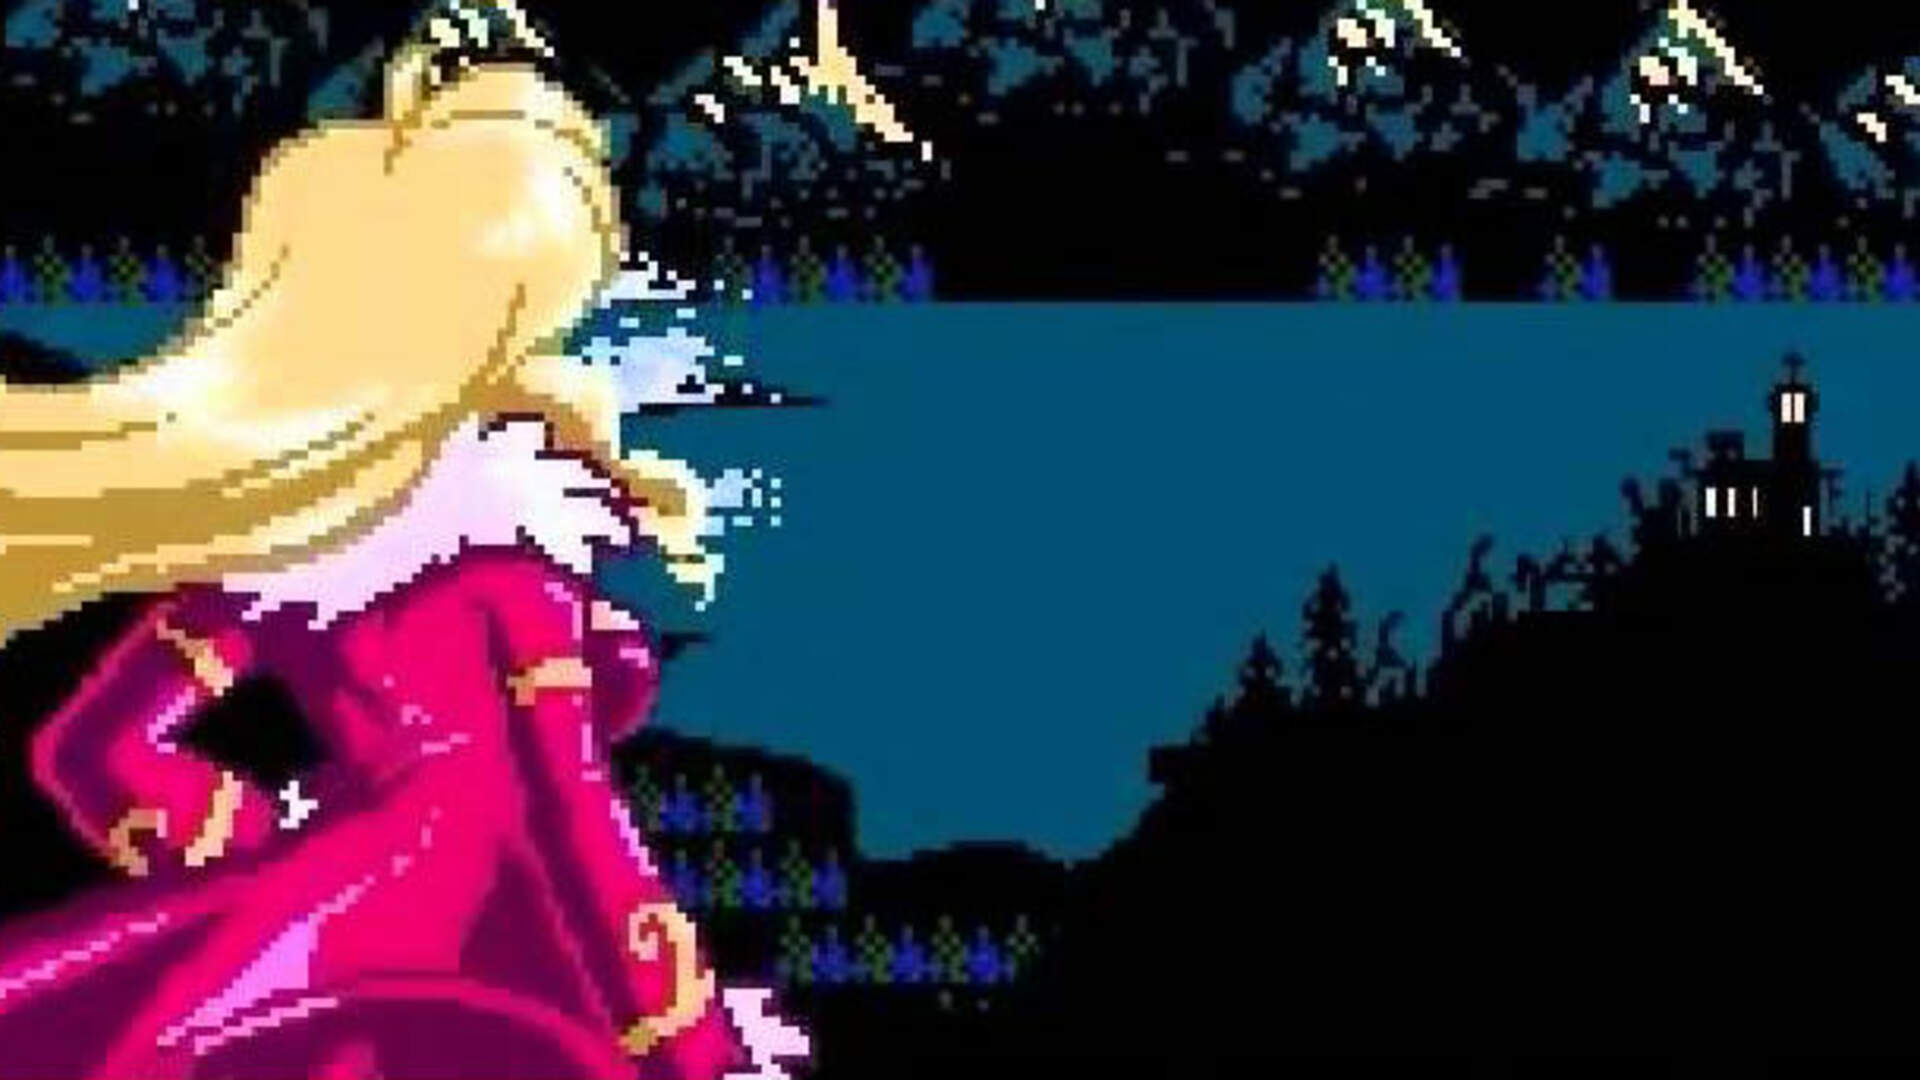 We Don't Need a New Castlevania Game When We Have Brave Earth Prologue